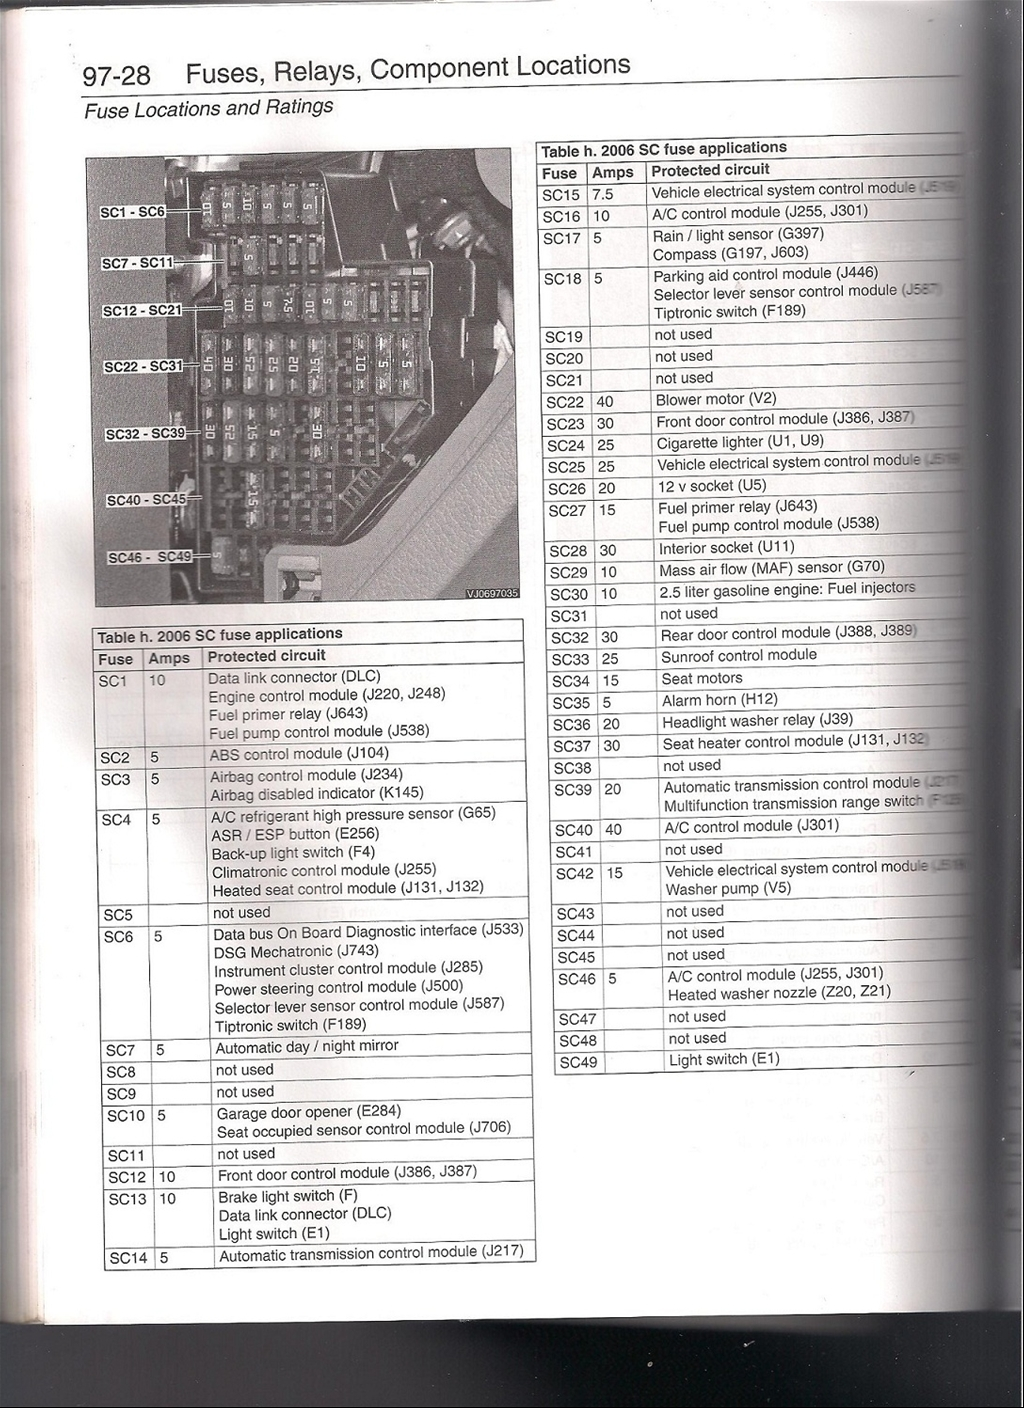 2008 eos fuse diagram - universal wiring diagrams circuit-verify -  circuit-verify.sceglicongusto.it  diagram database - sceglicongusto.it